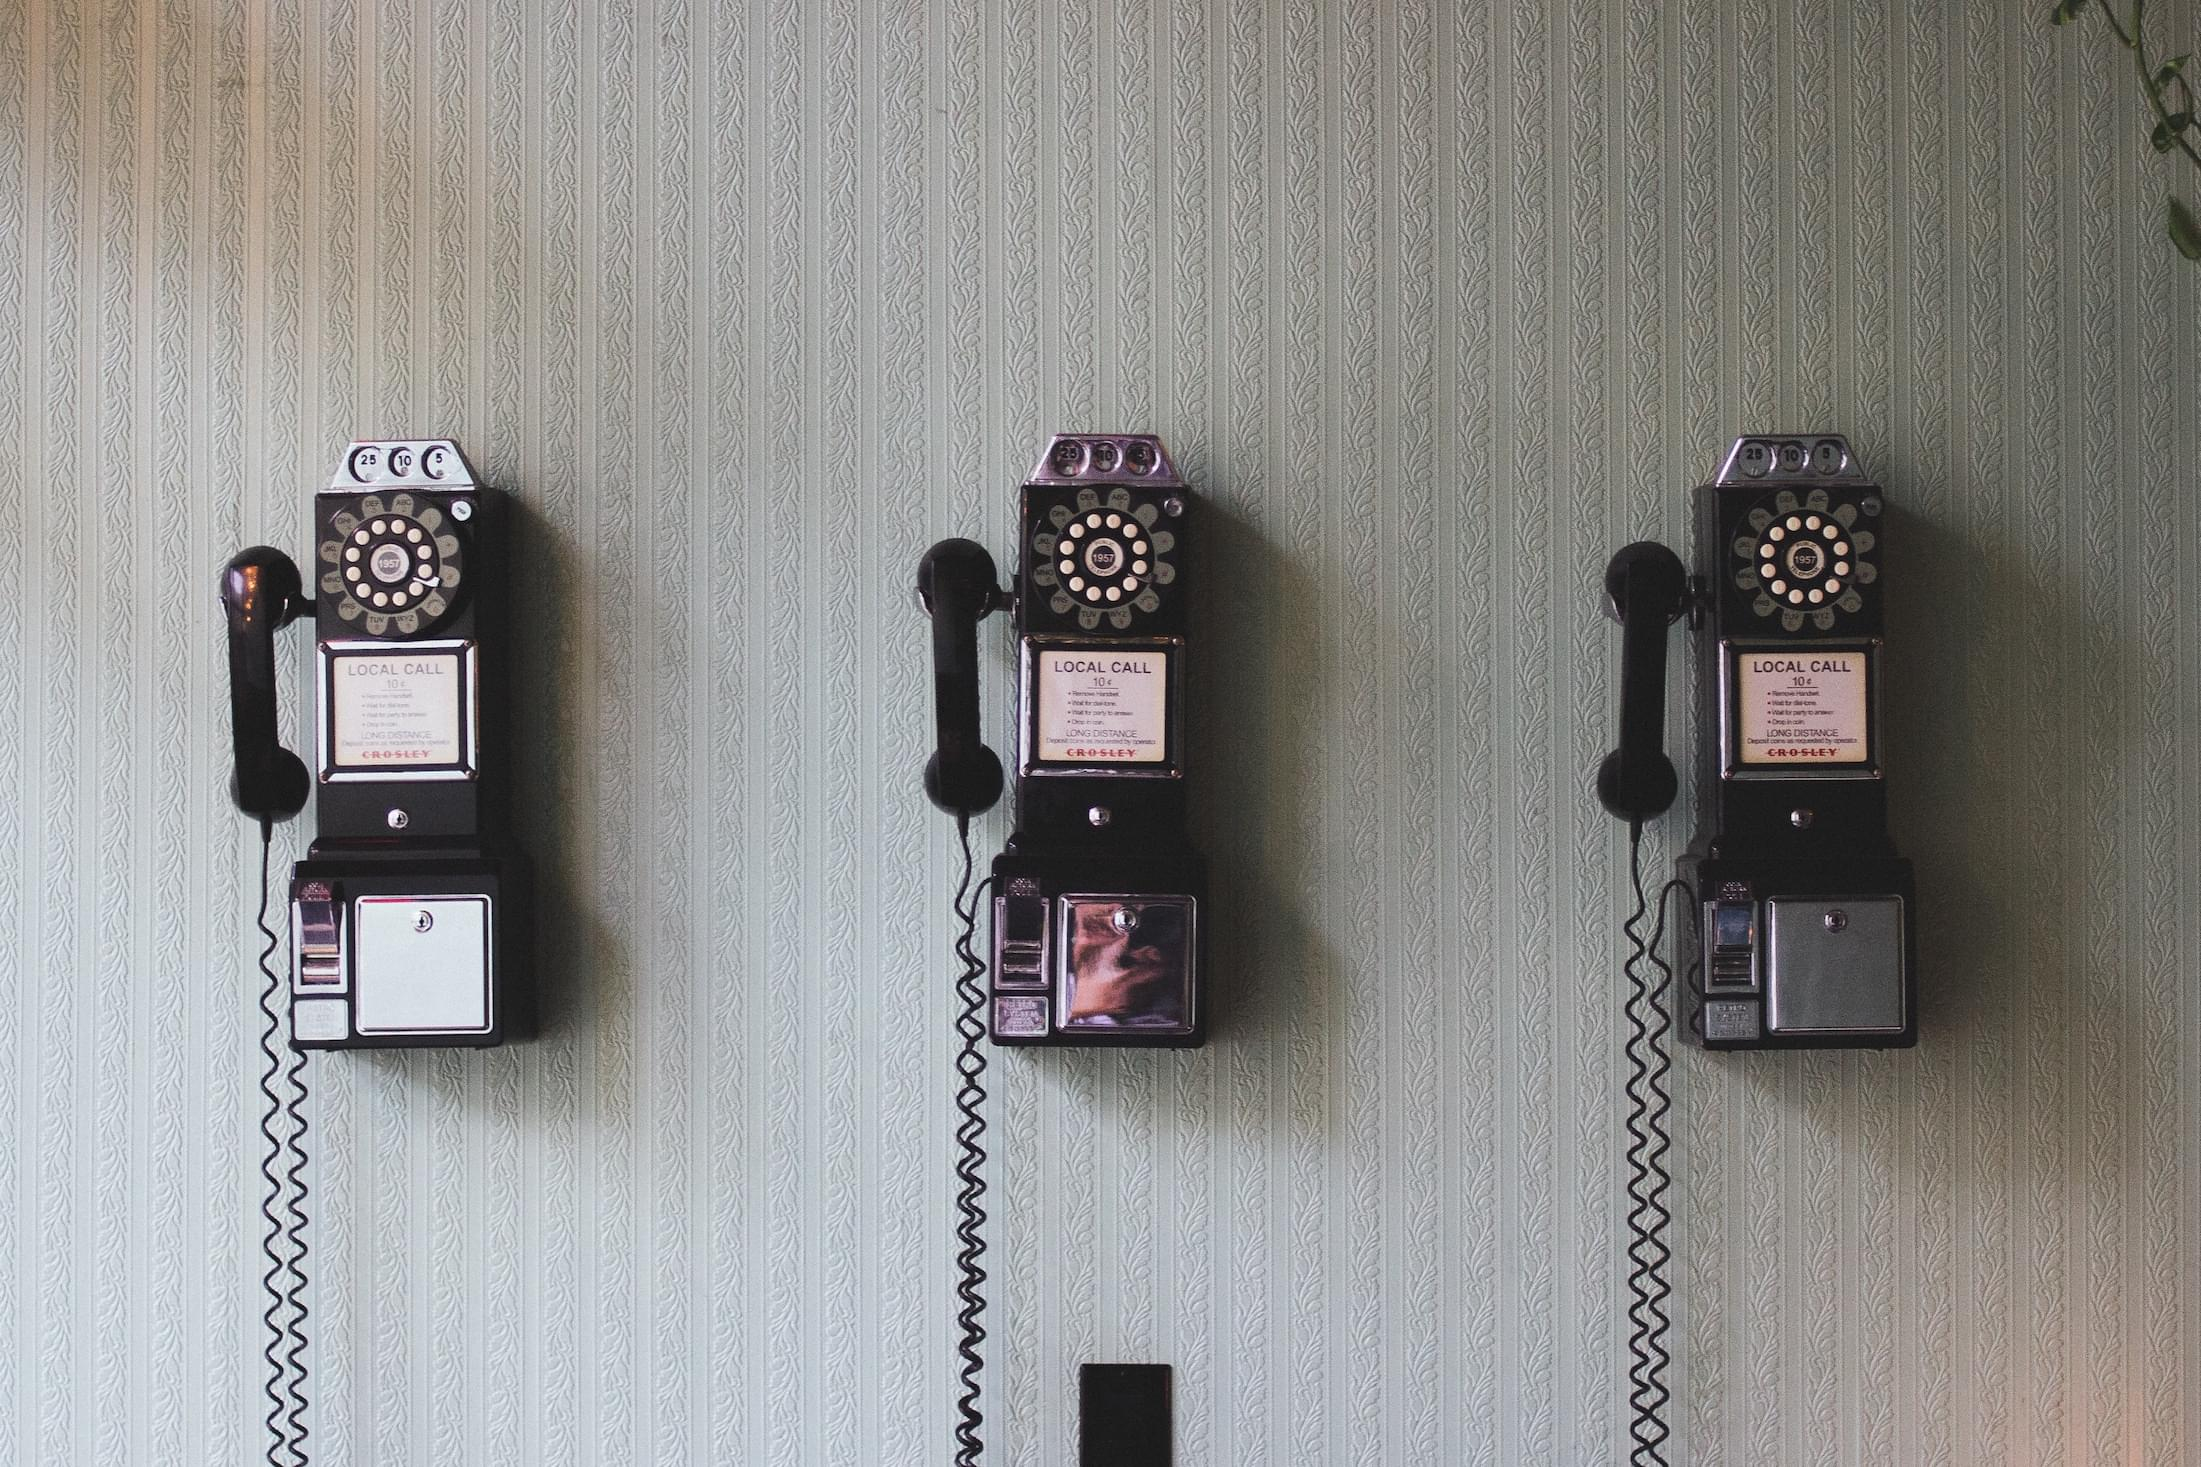 Phone callbacks in Android Using TelephonyManager — SitePoint